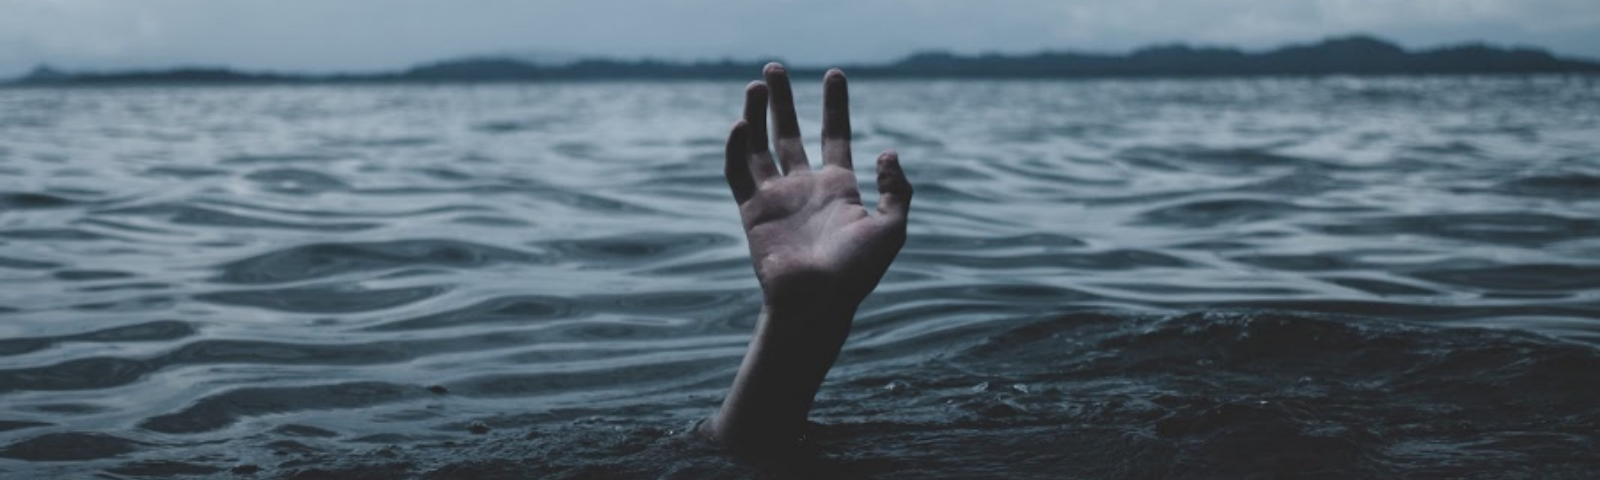 Man drowning, with only his hand remaining above water.